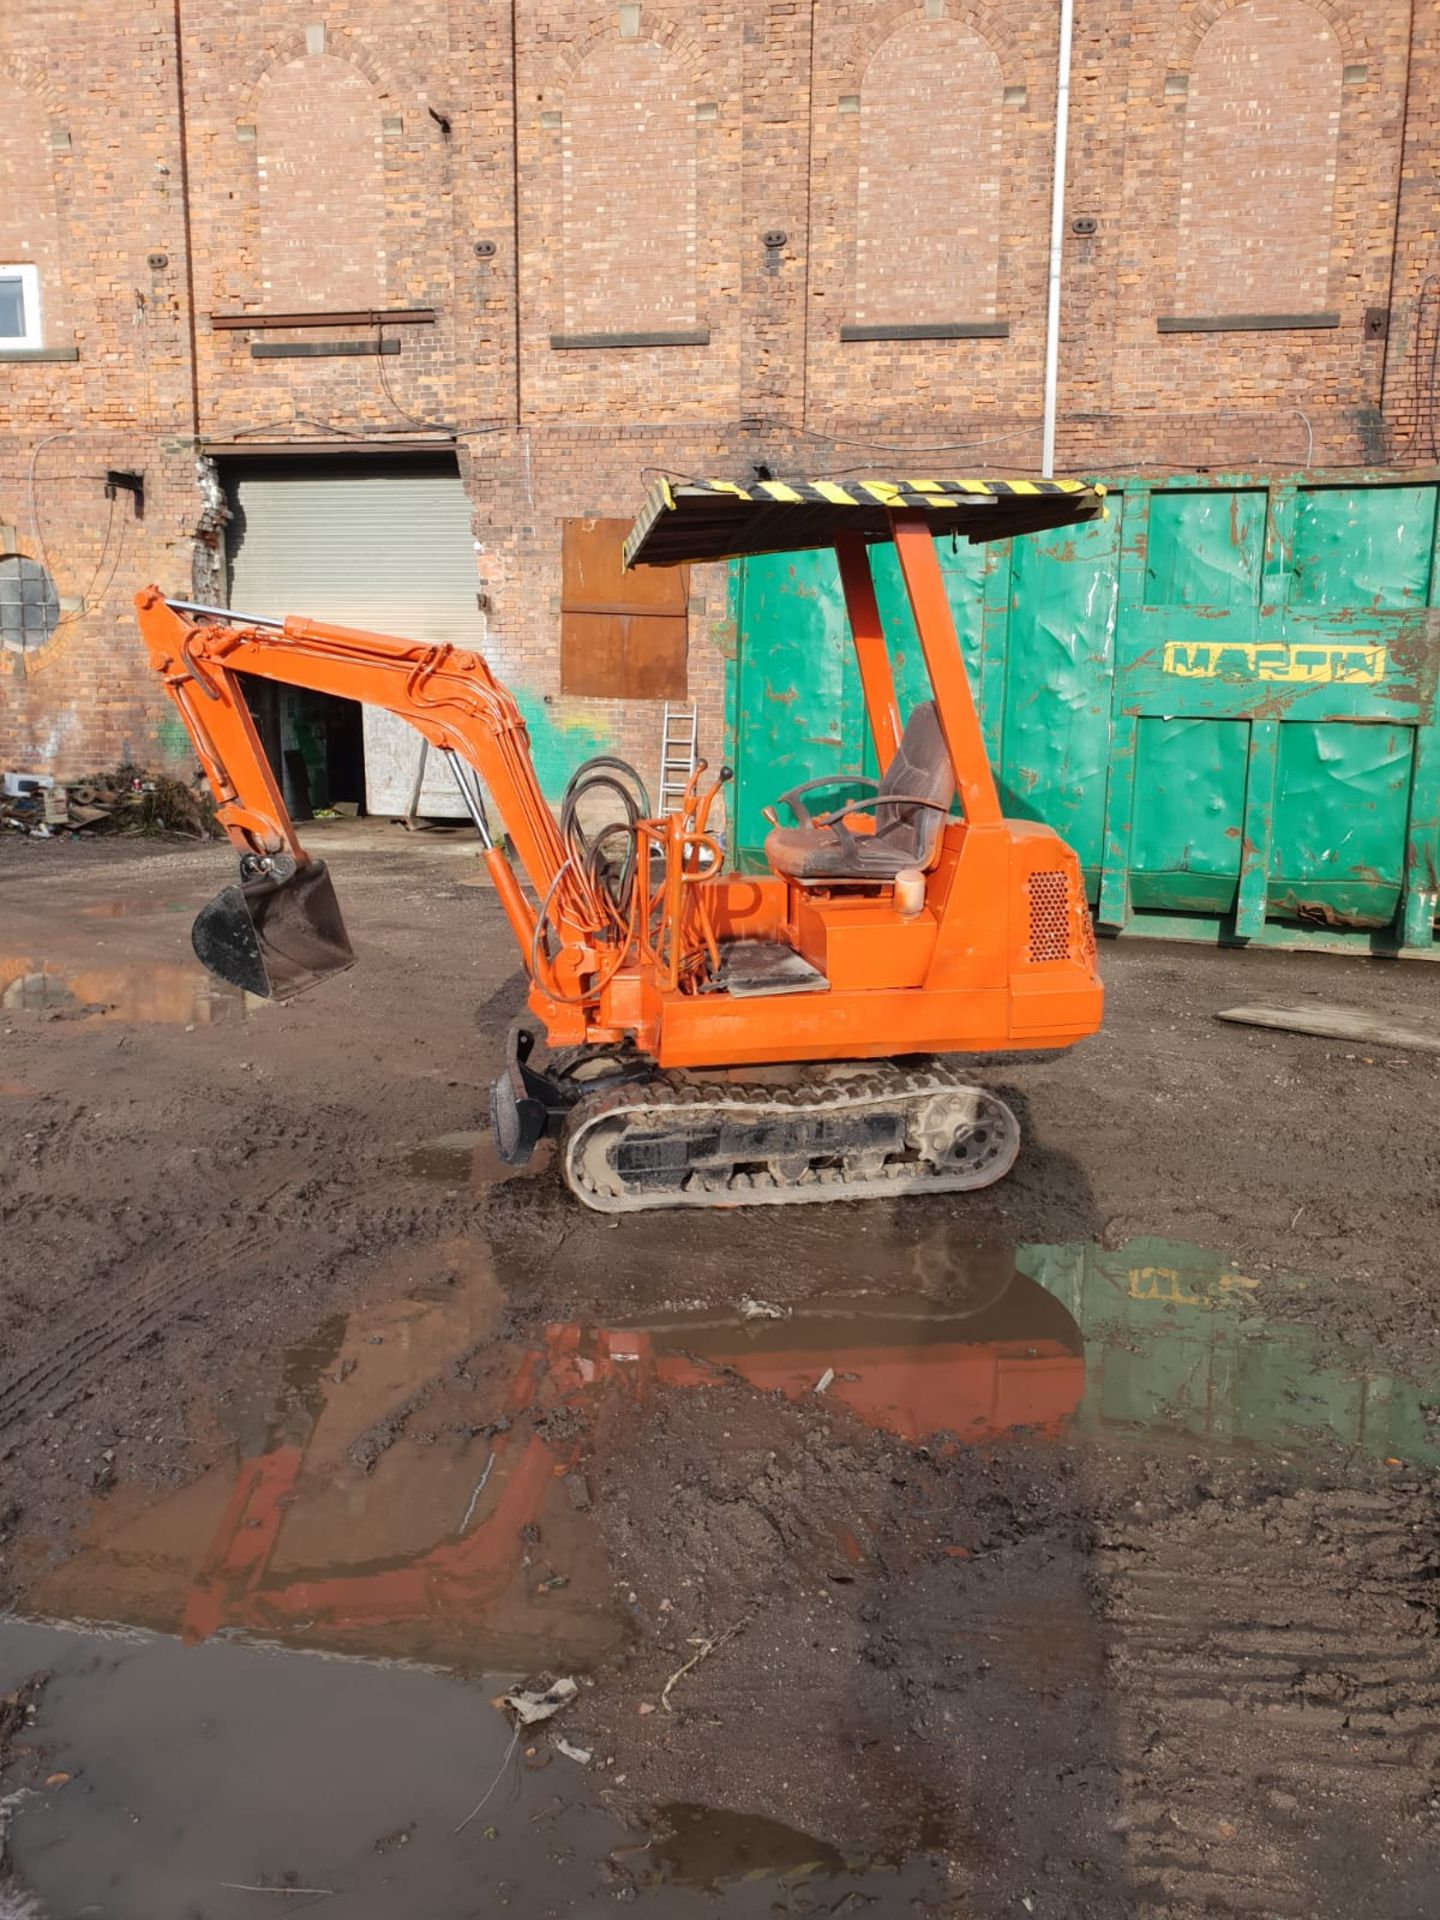 KUBOTA MINI DIGGER RUBBER TRACKED EXCAVATOR, 1.5 TON, STARTS AND DRIVES *NO VAT* - Image 4 of 8